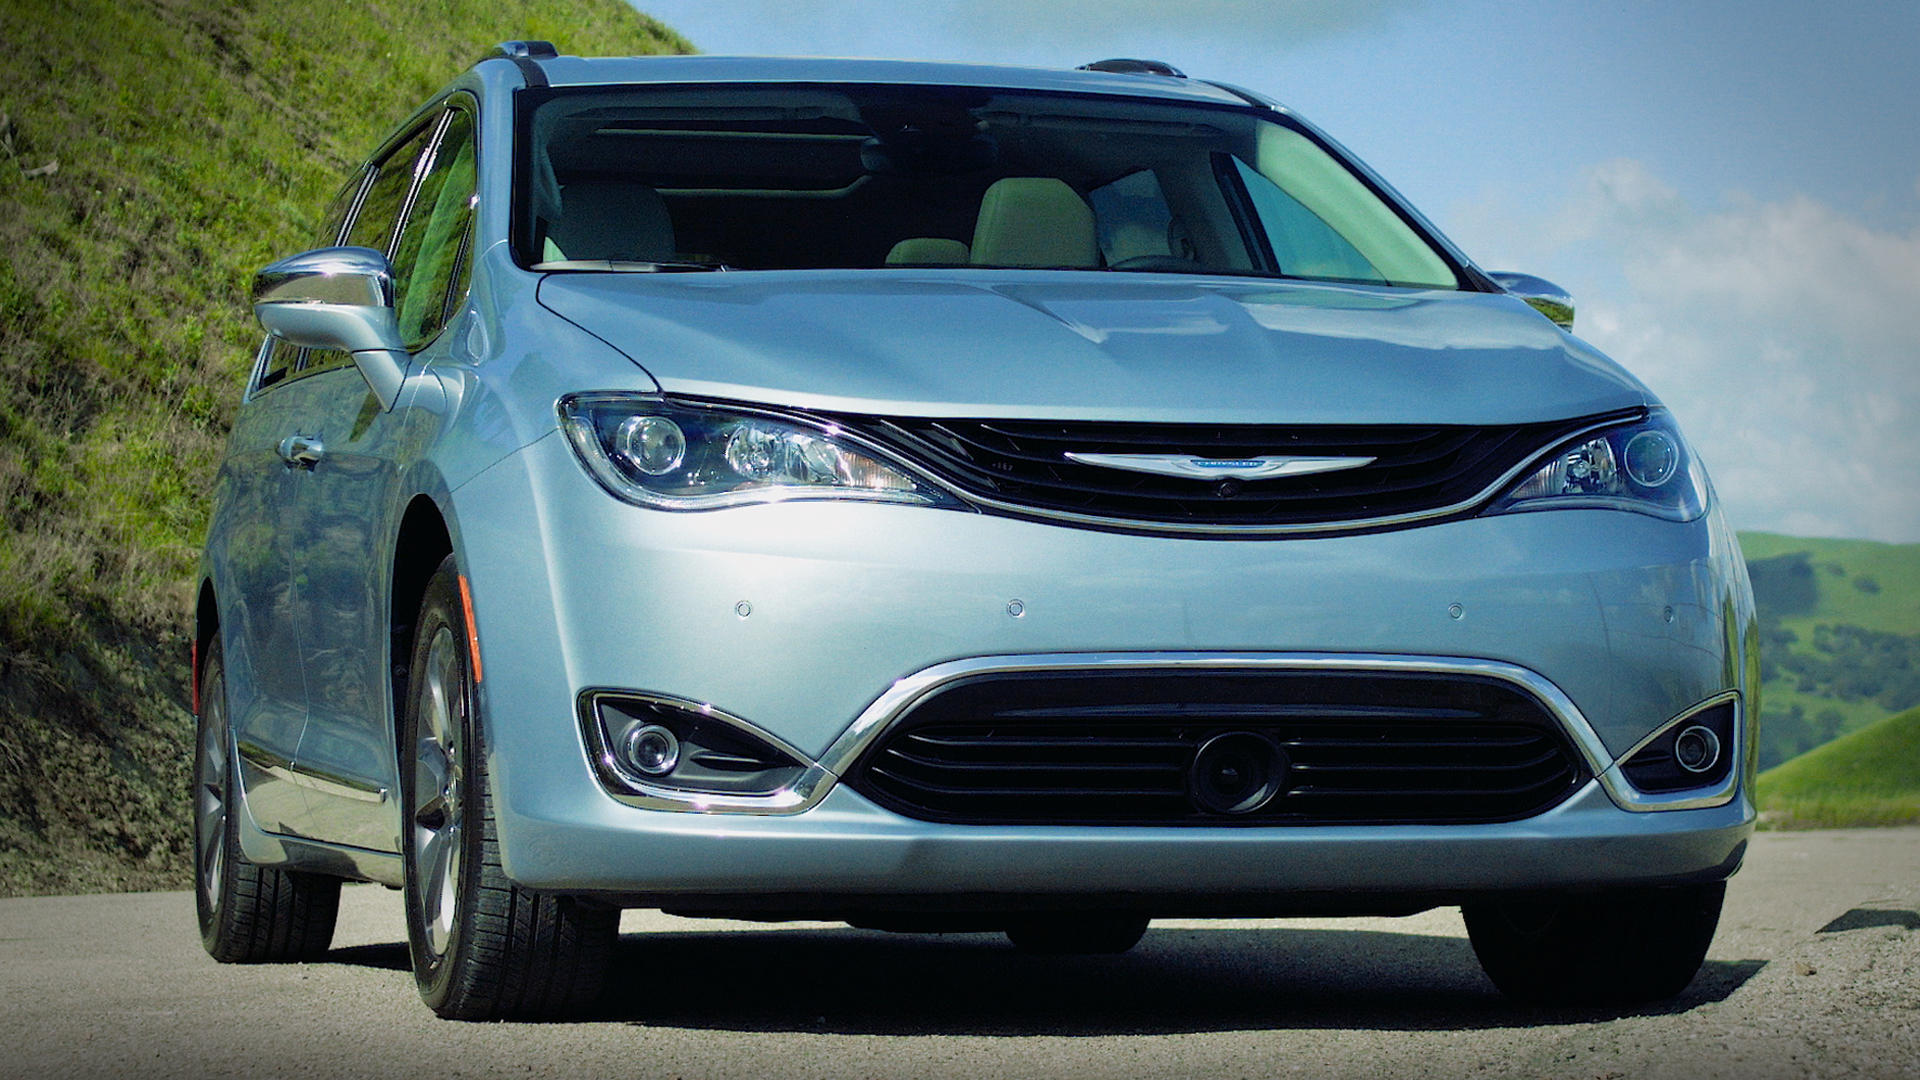 Video: Chrysler Pacifica: 5 things you need to know